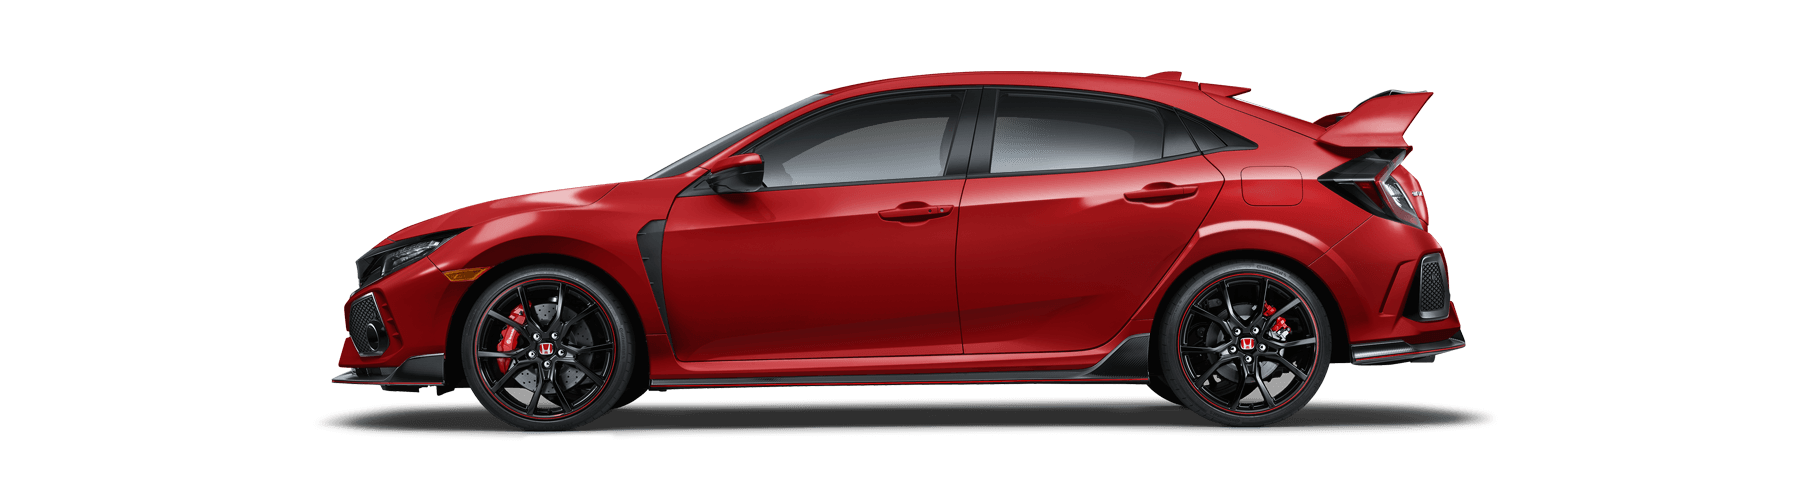 2018 Honda Civic Type R Side Profile